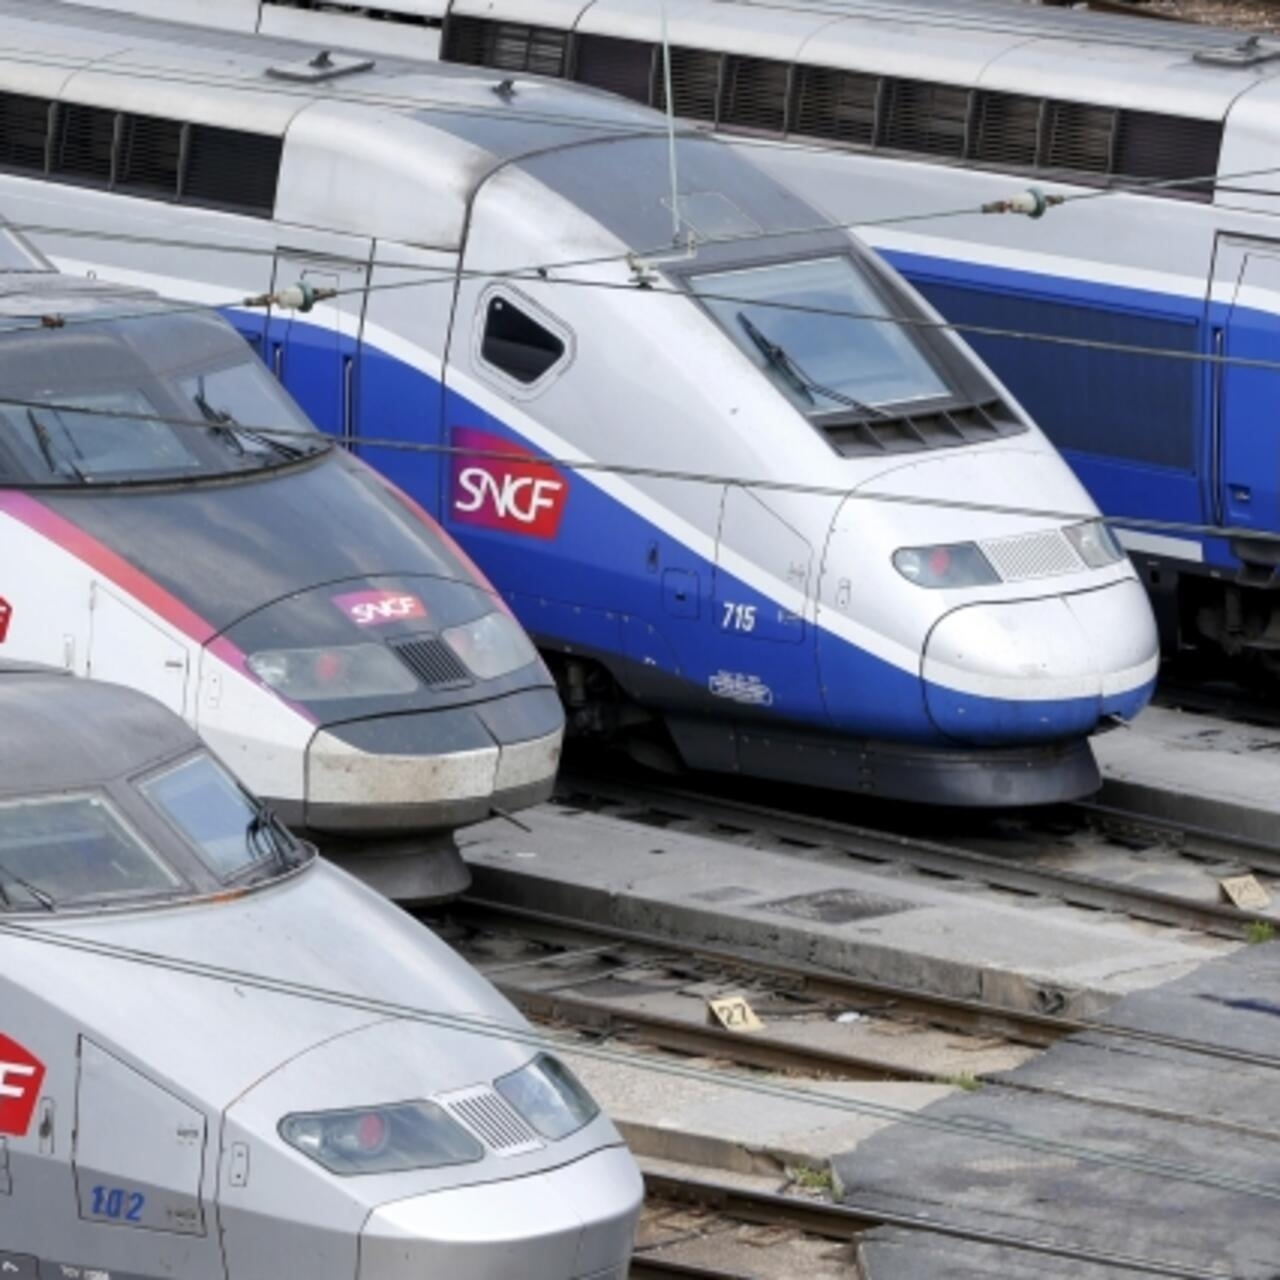 Paris Bordeaux In Two Hours French Railway Opens New Tgv Lines Sunday